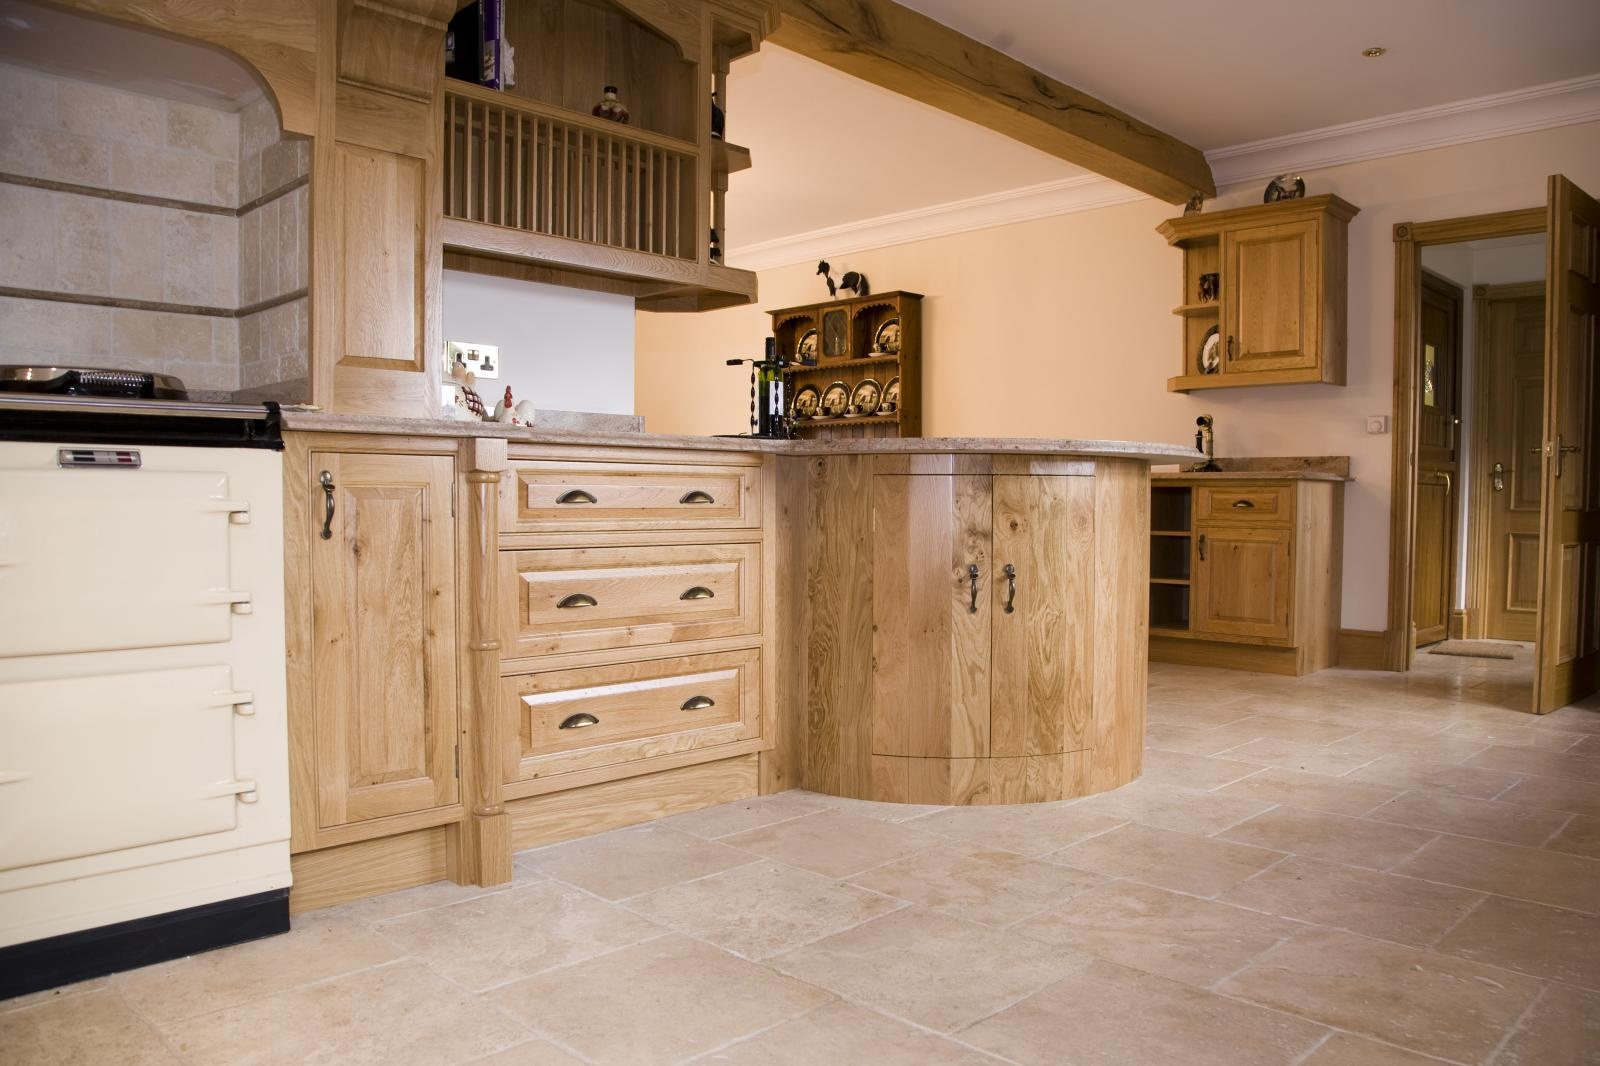 Oak Kitchen Oak Kitchen Bristol Mark Stones Welsh Kitchens Bespoke